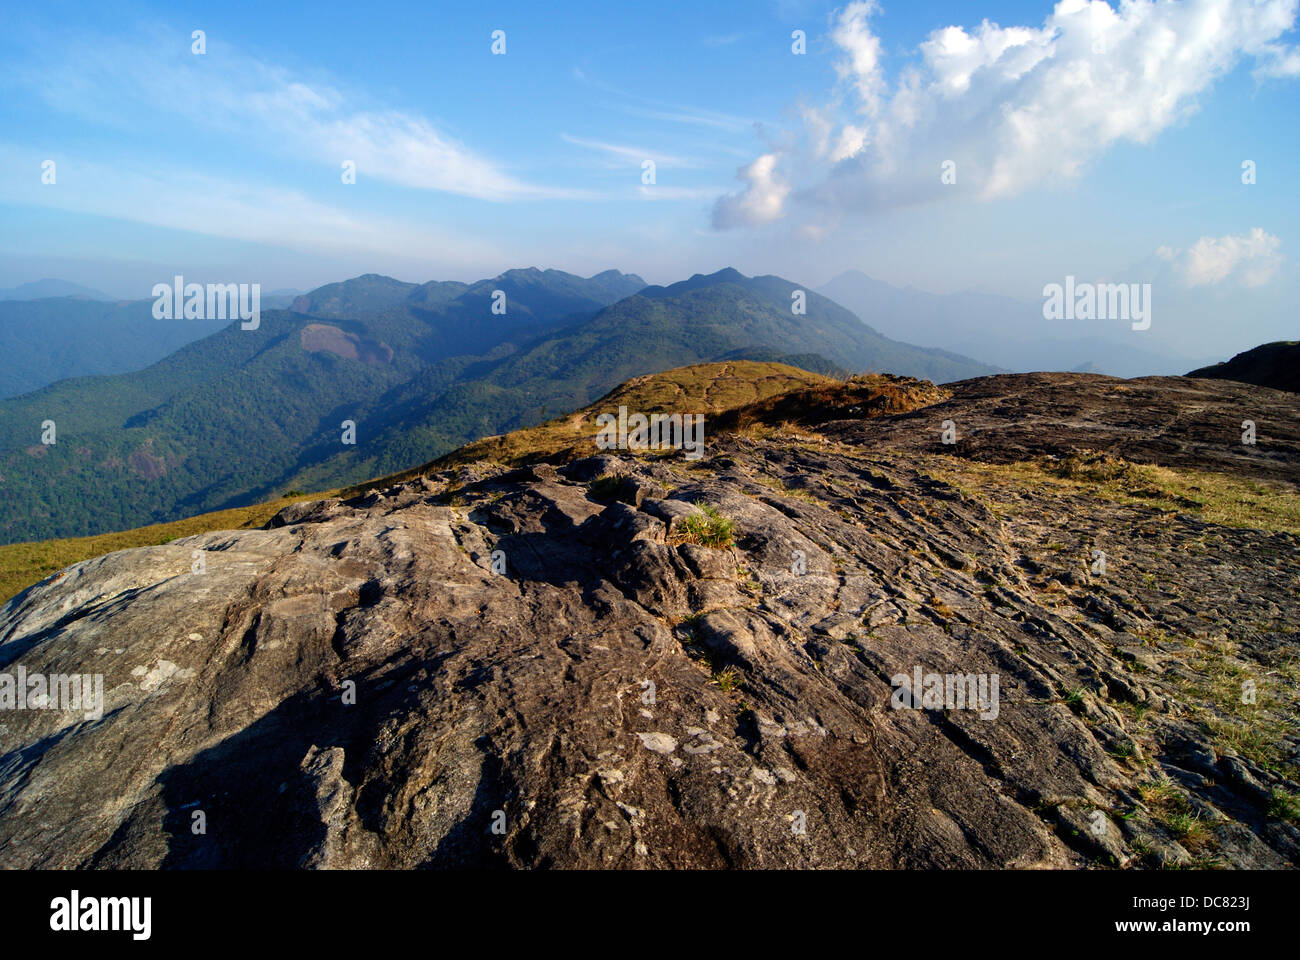 Western Ghats of South India Location Ponmudi at Trivandrum District Kerala Clouds and Hill top View - Stock Image